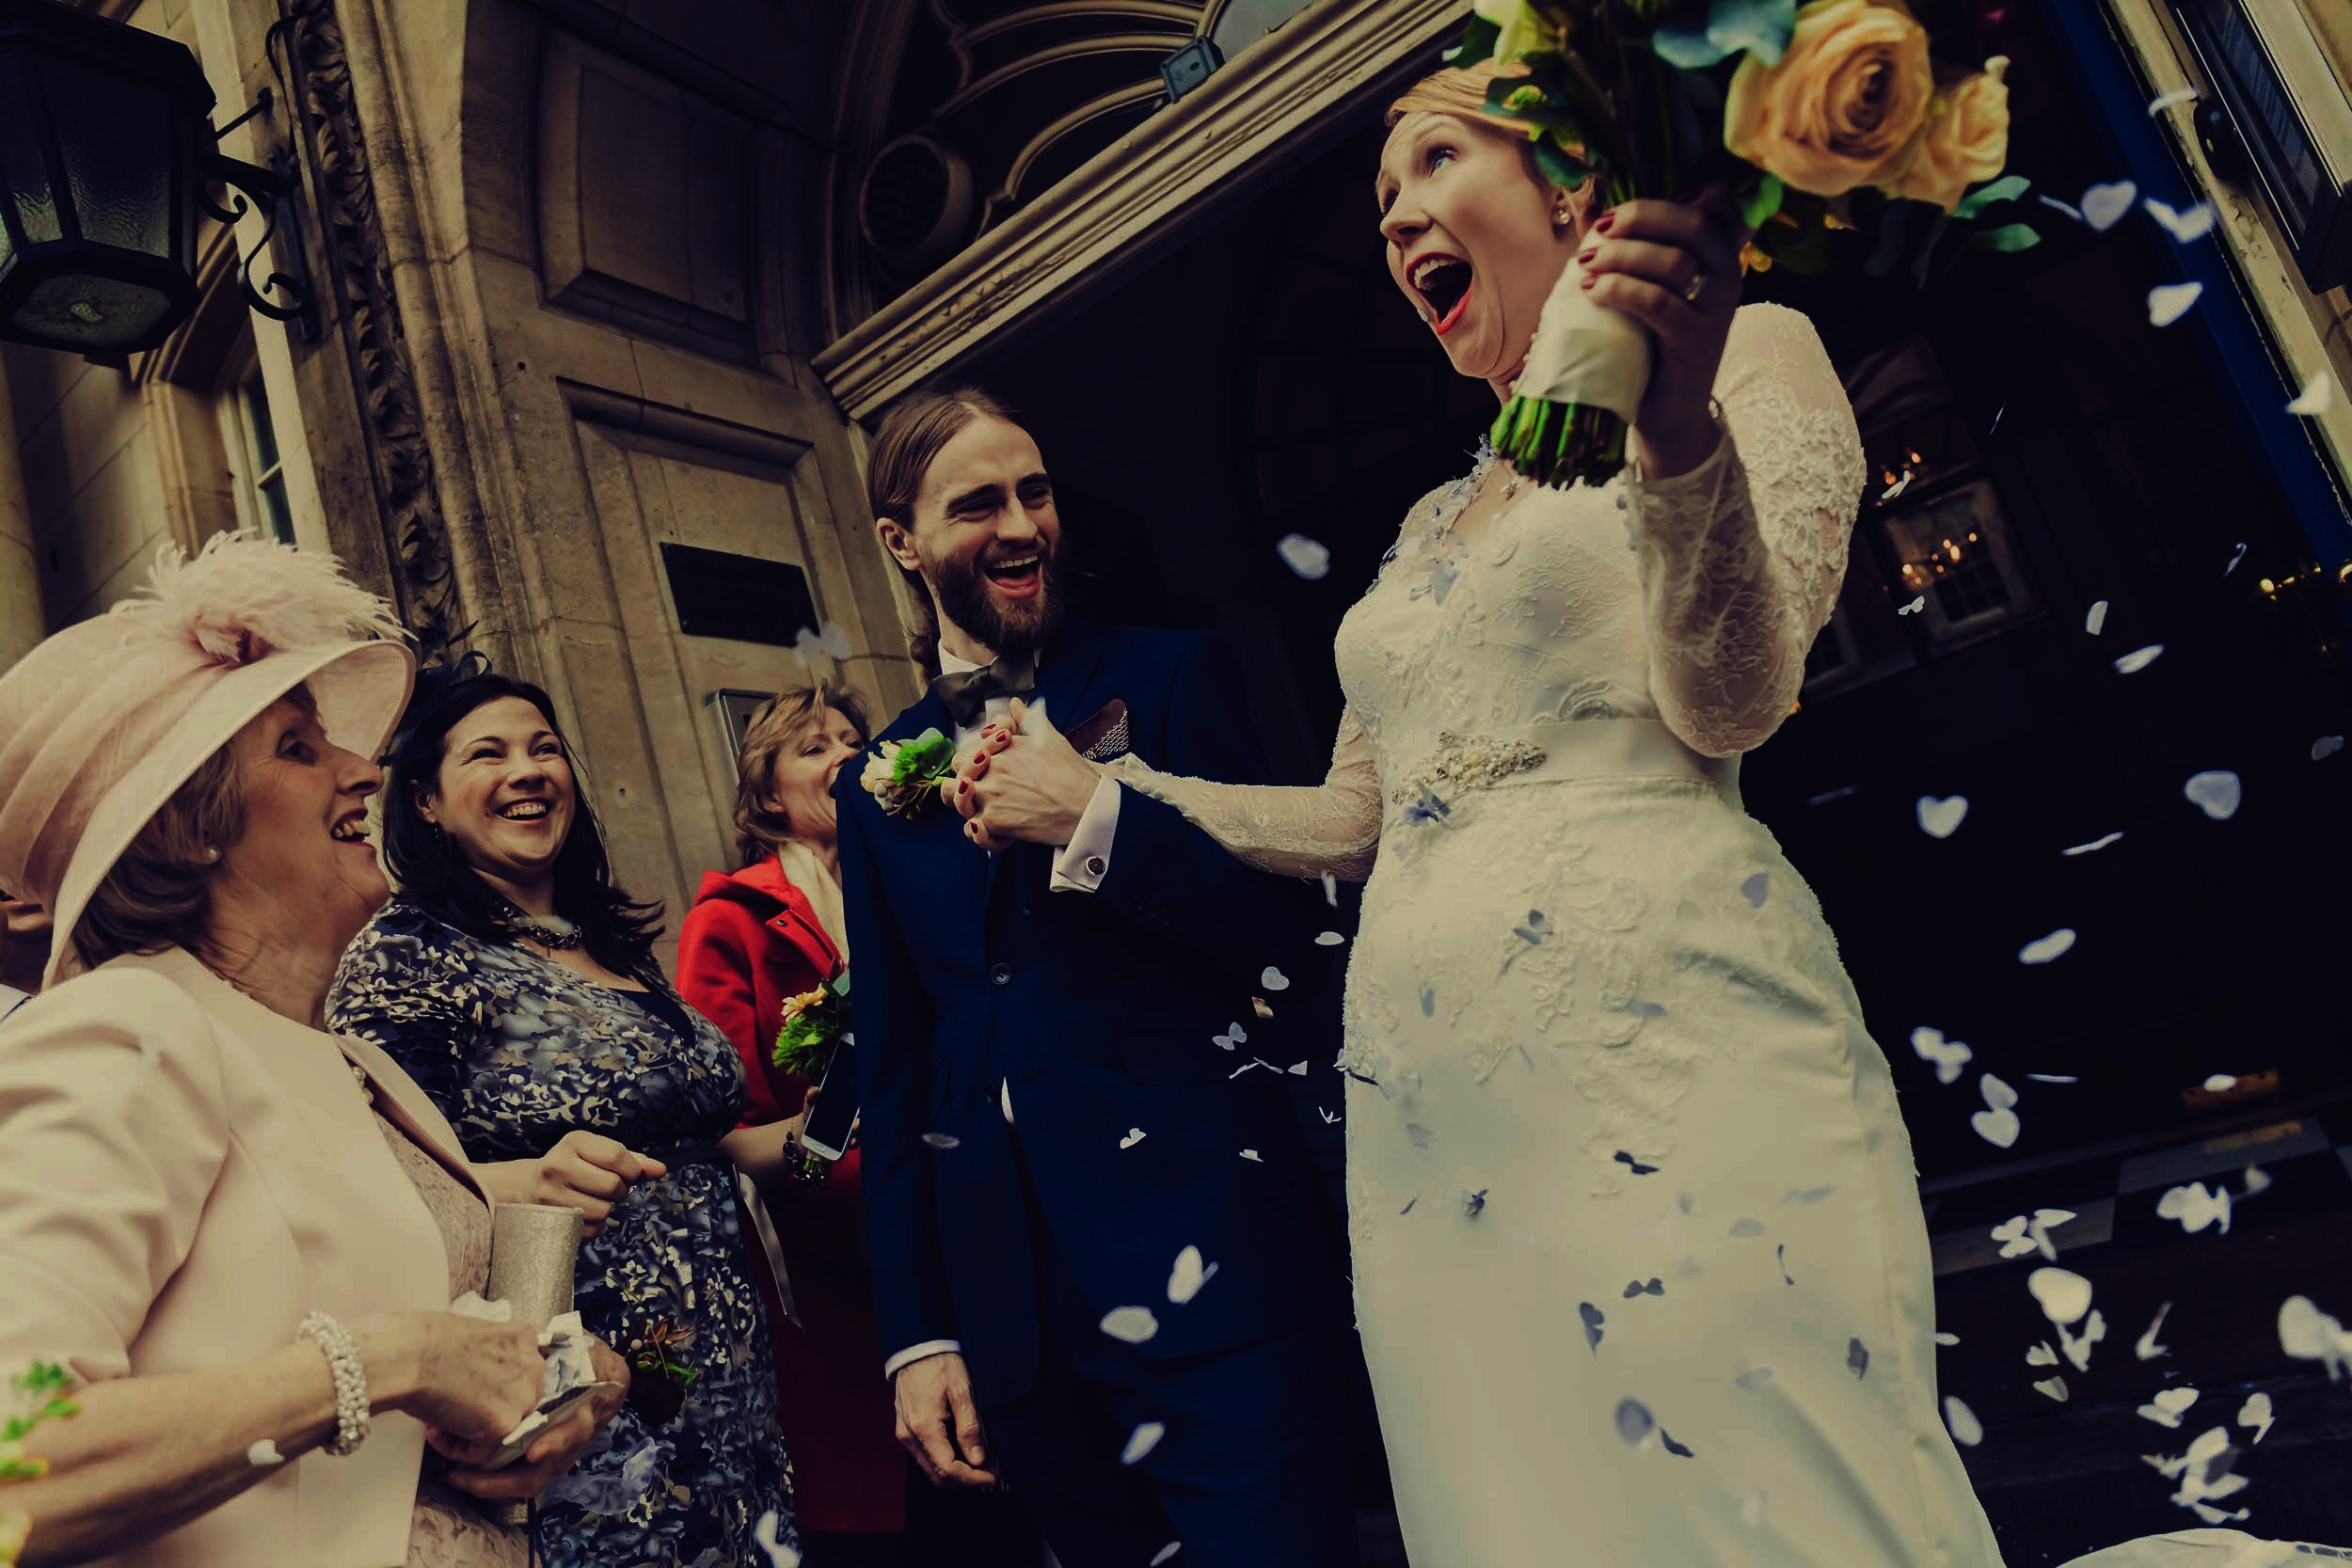 Affordable - Wedding photography prices well under £1,000 / lower fees for weekdays and Sundays / substantial off-season discount